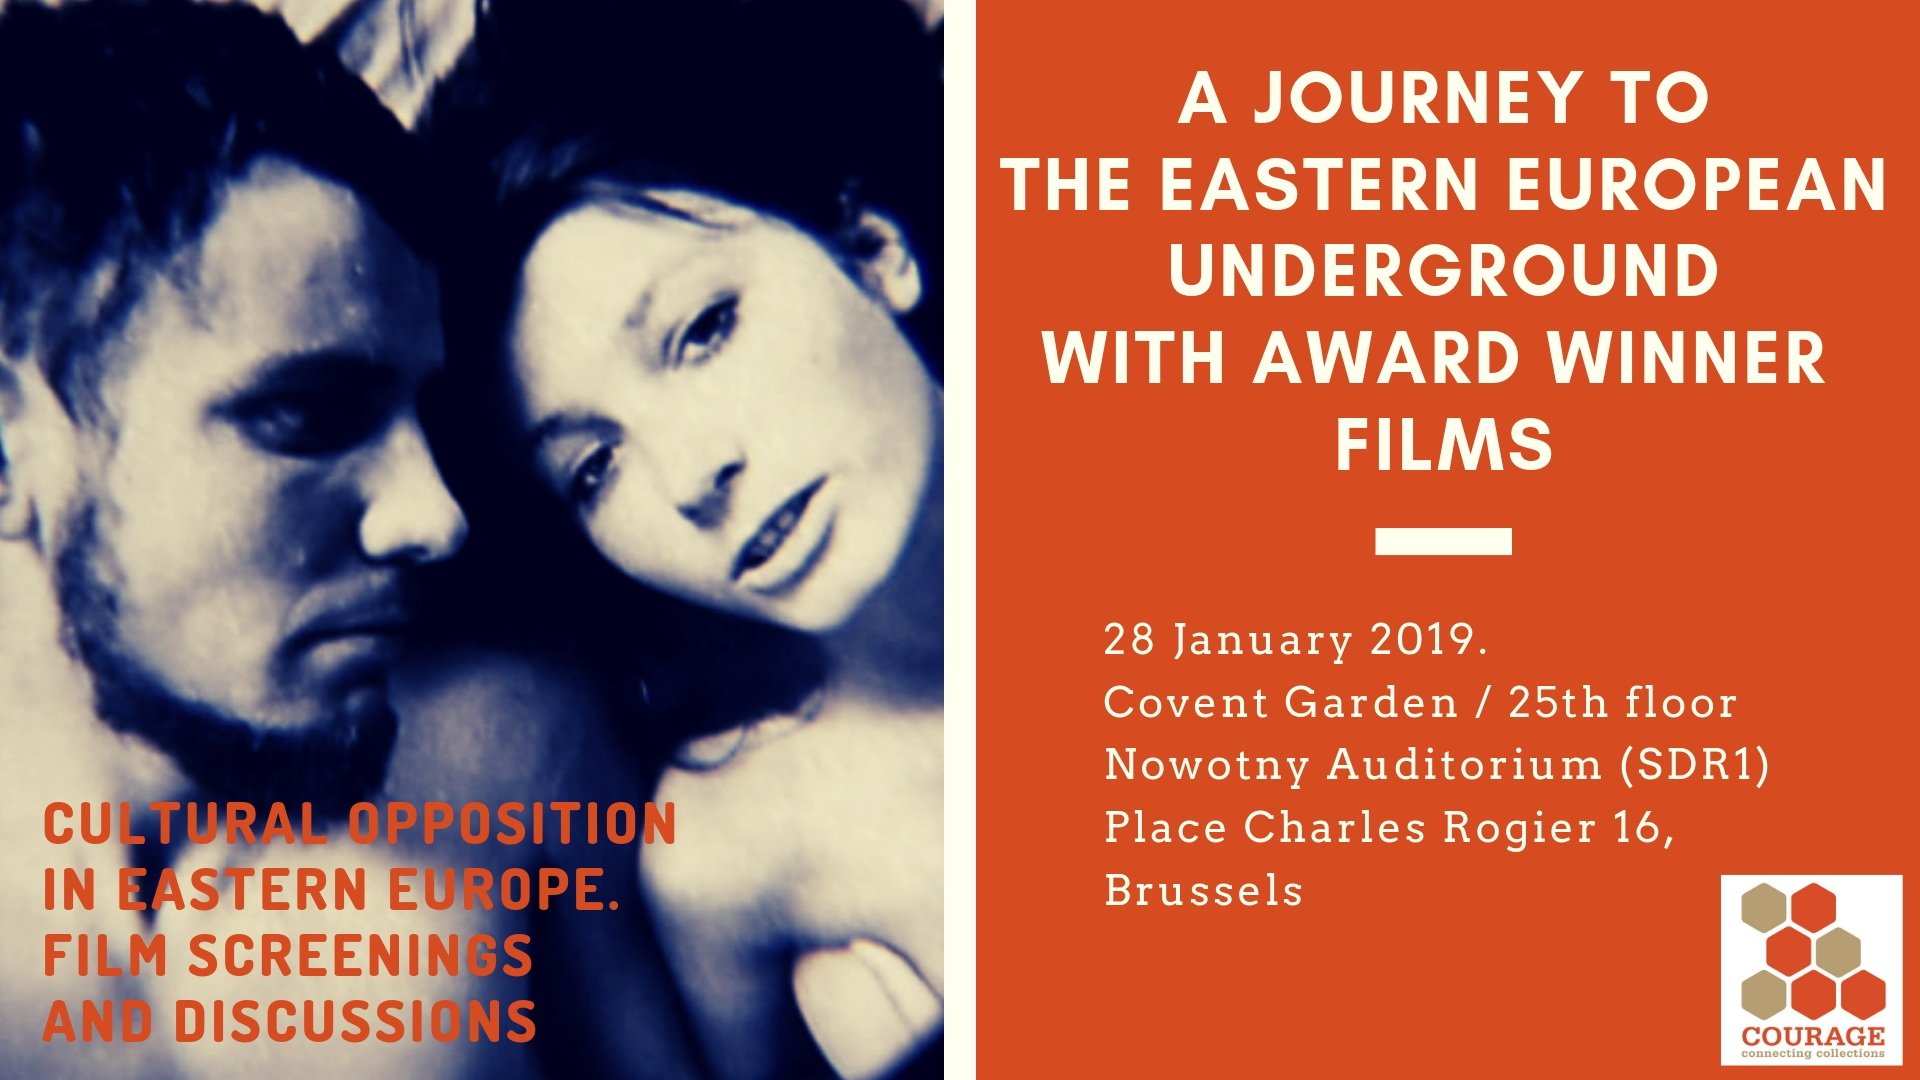 A Journey to the Eastern European Underground with Award Winner Films